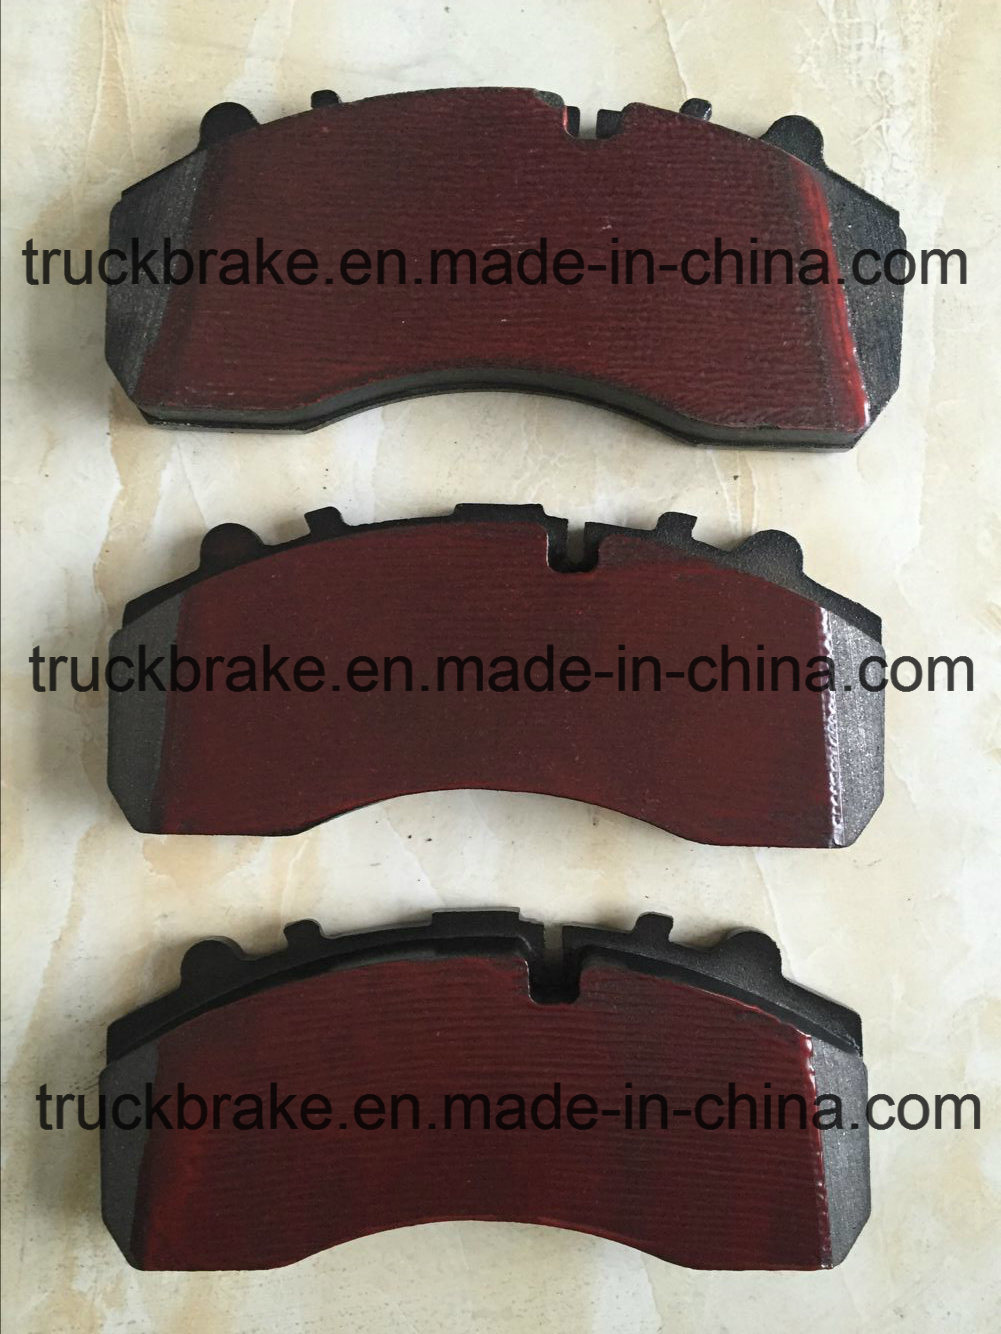 for Benz Auto Parts/Truck Part Brake Pad Wva 29202/29087/29244/29245/29253/29108